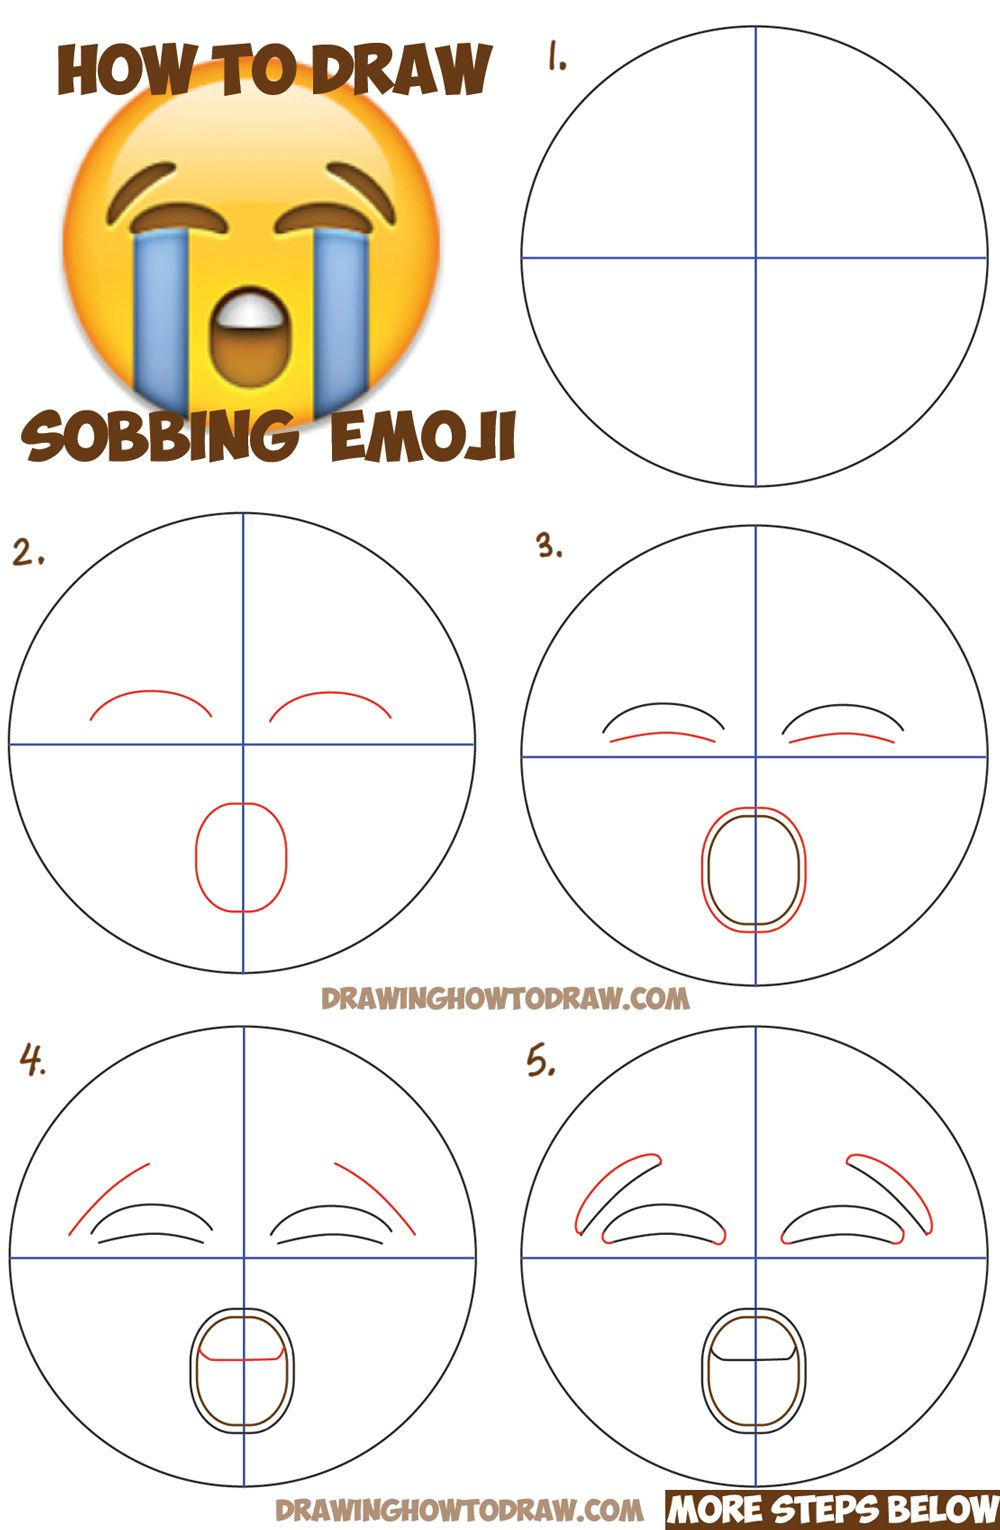 How To Draw Sobbing Crying Emoji Face With Easy Steps Lesson